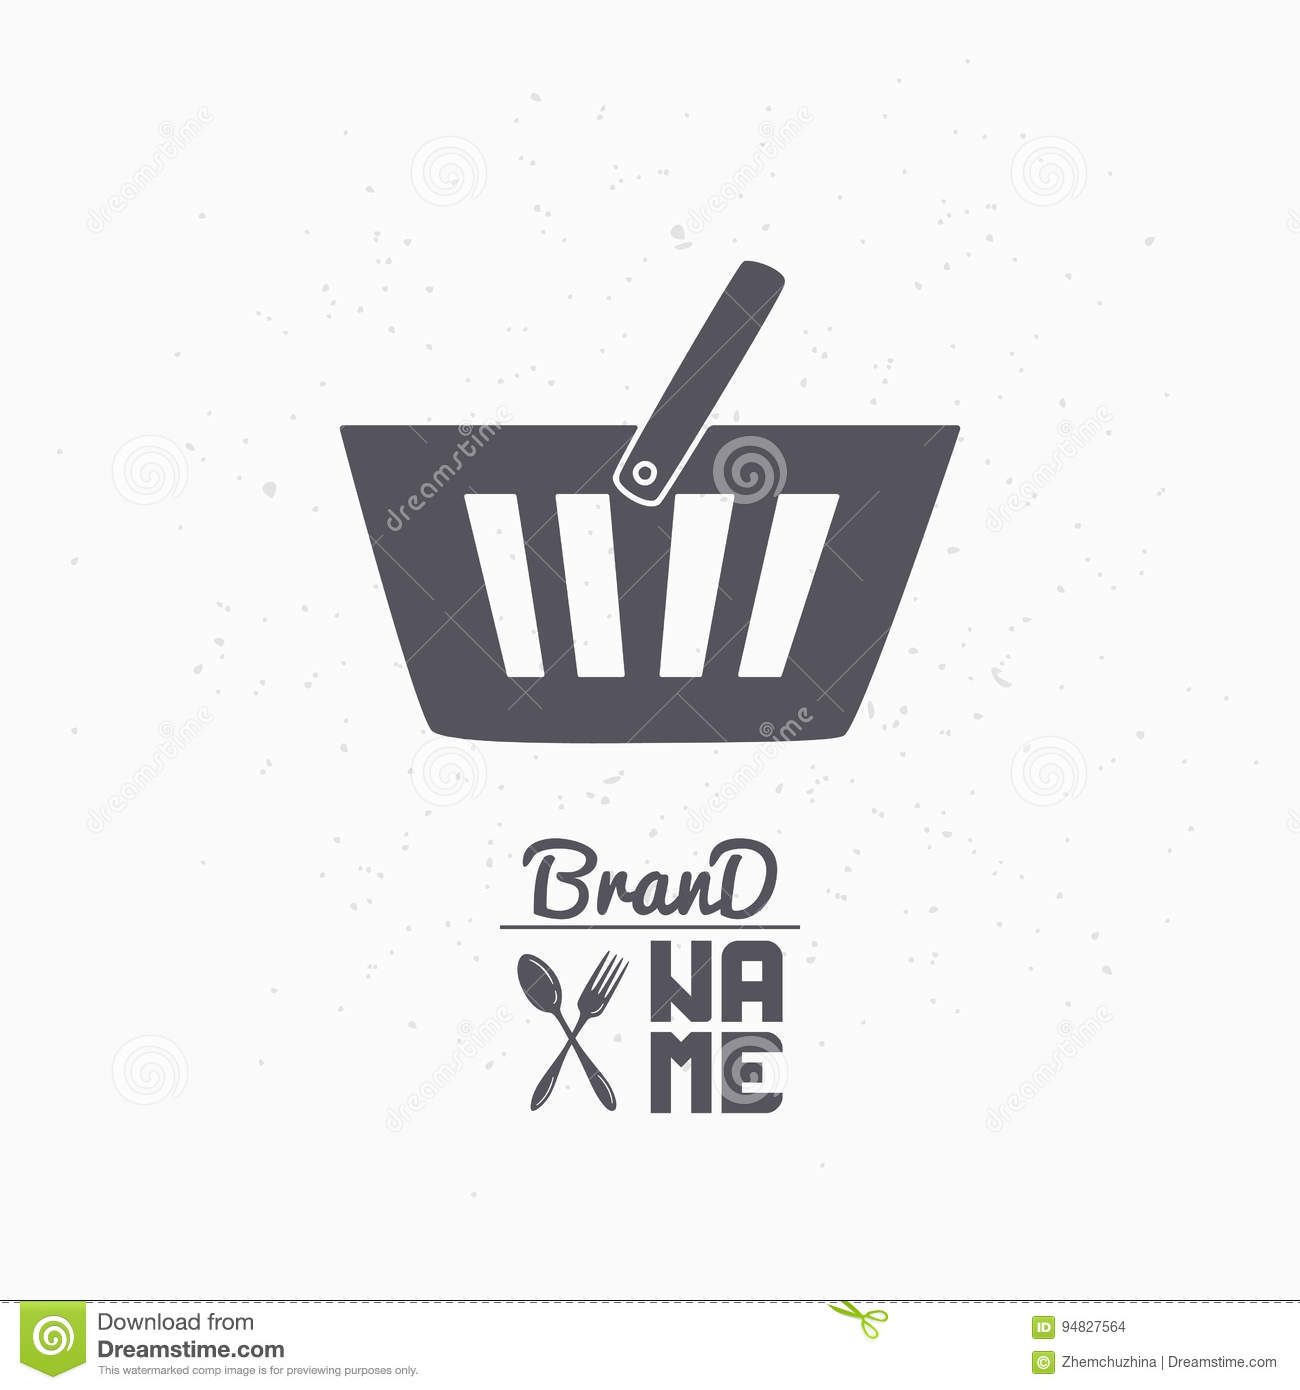 Download Hand Drawn Silhouette Of Shopping Cart Food Store Logo Template For Craft Packaging Or